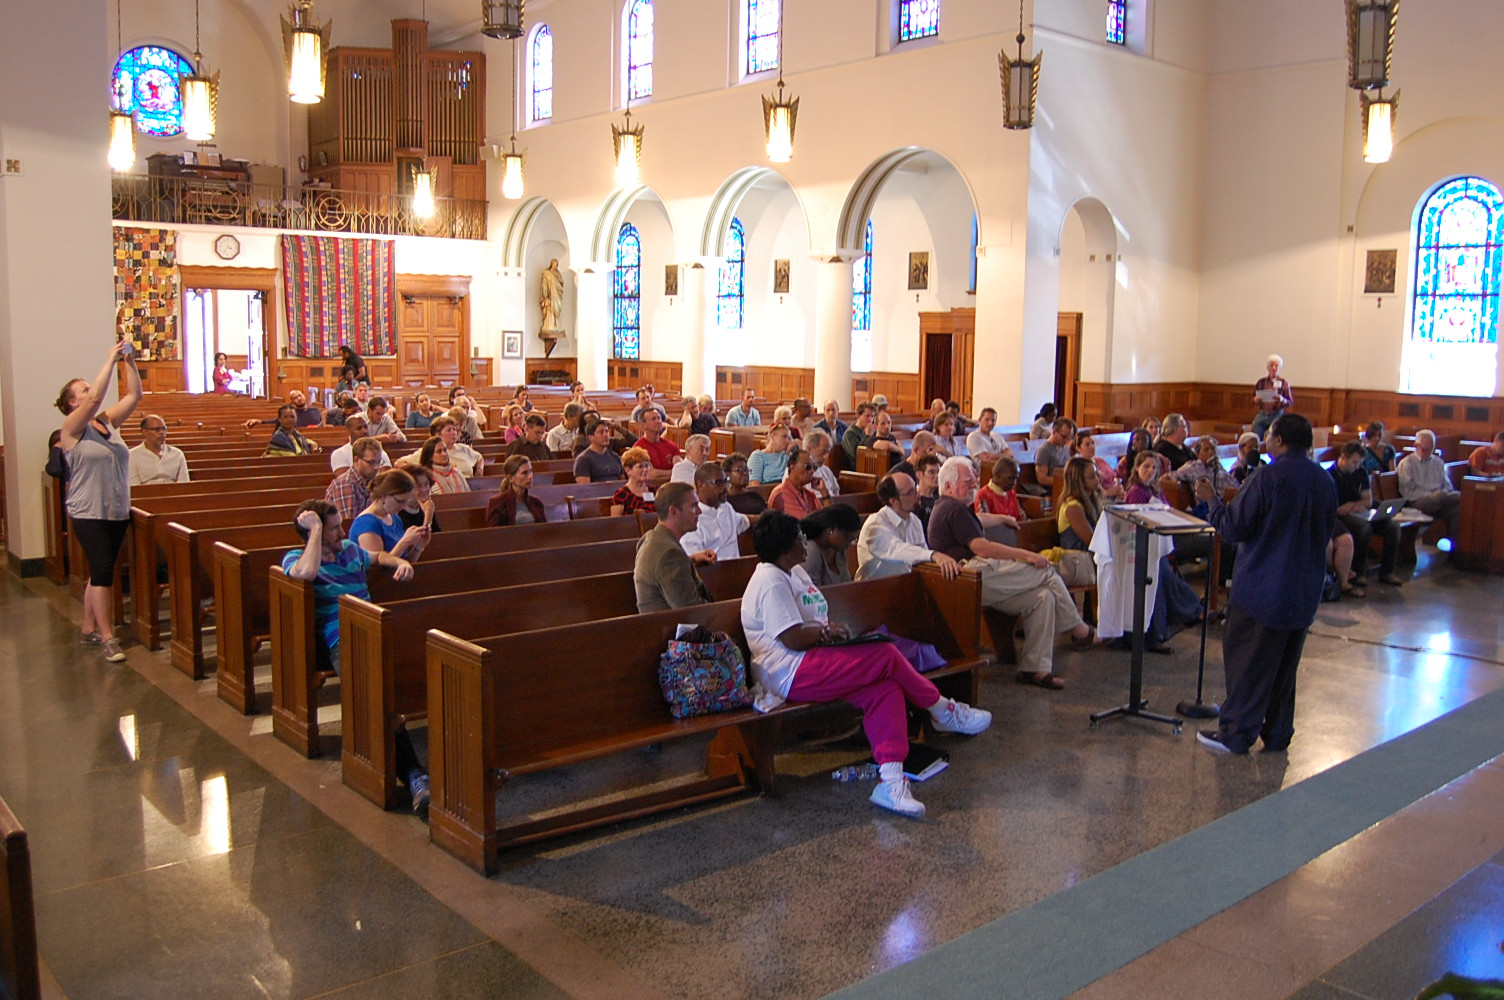 Held in St. Martin's Church on North Capitol Street, the town hall attracted some 100 attendees.